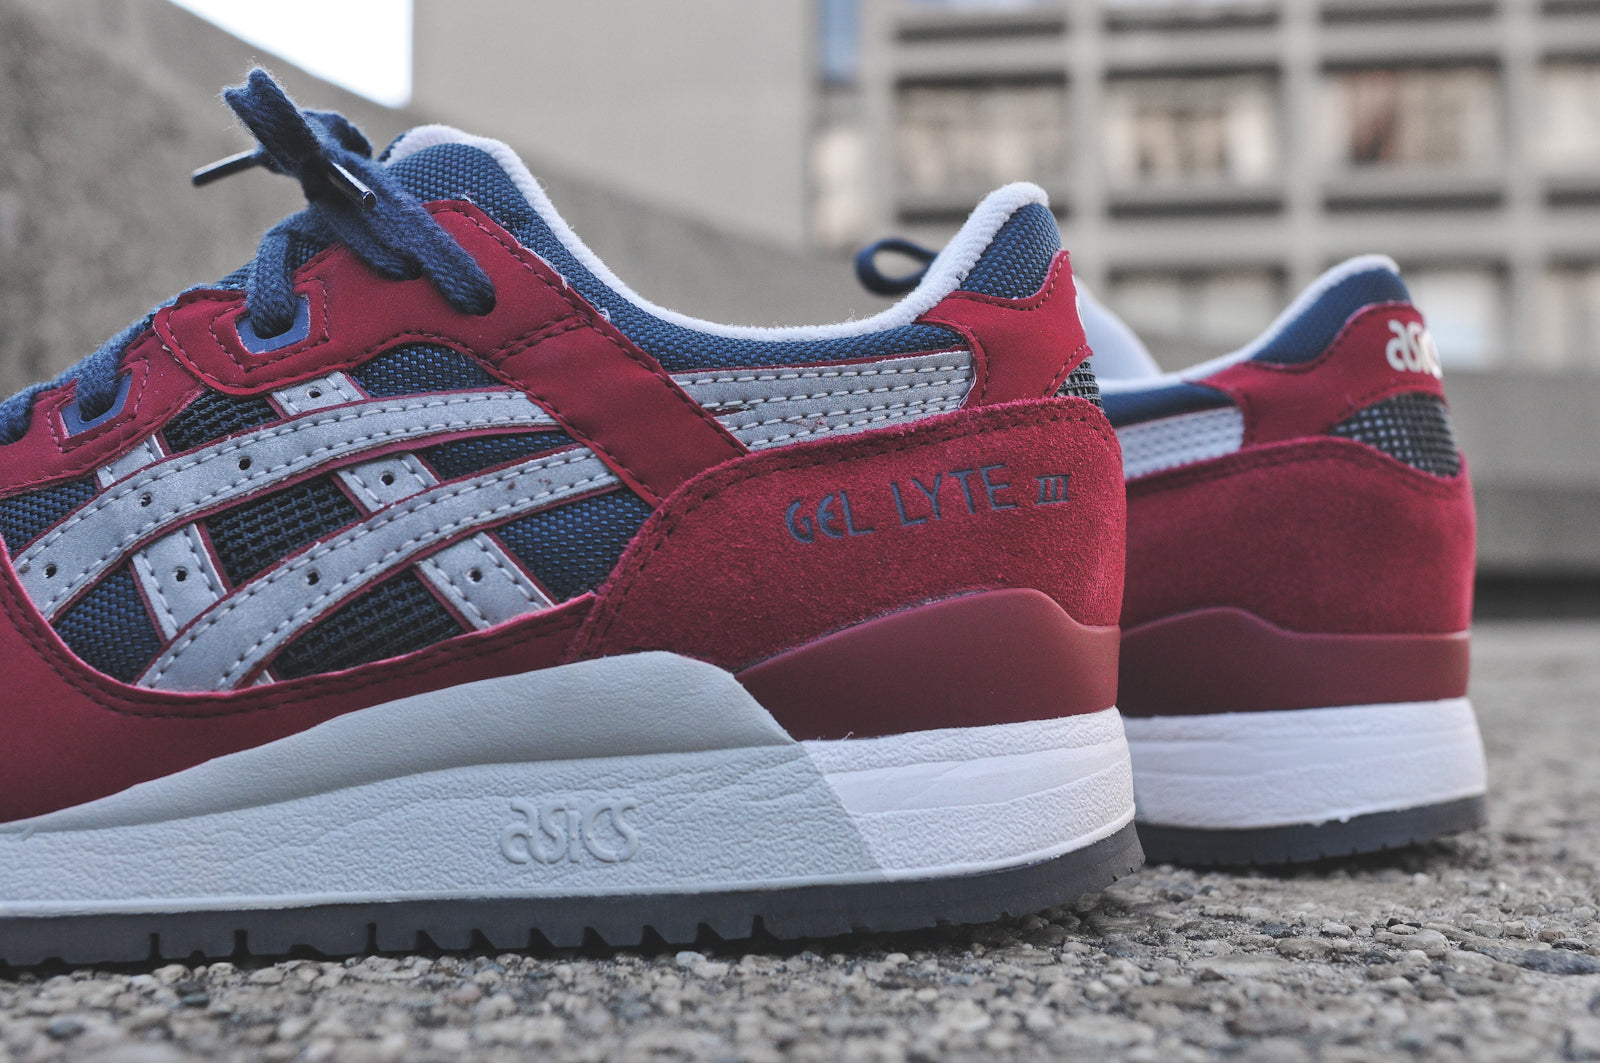 ASICS GEL LYTE III BURGUNDY NAVY & GEL SAGA BLACK